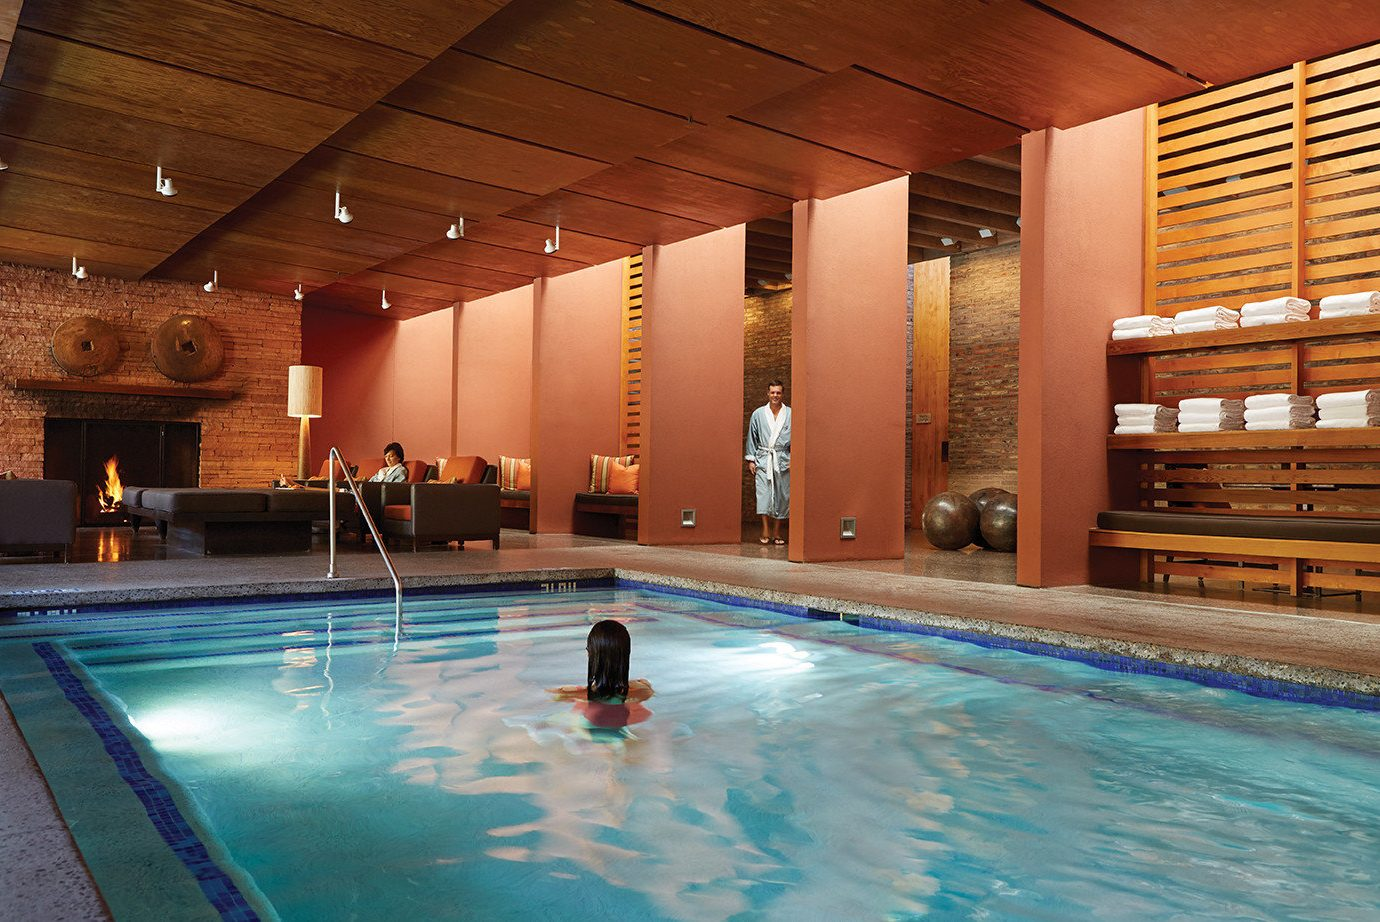 ambient lighting cozy Fireplace indoor pool Lounge Luxury people Pool relaxation Spa swimming warm woman women ceiling indoor swimming pool leisure water sport leisure centre estate billiard room Resort